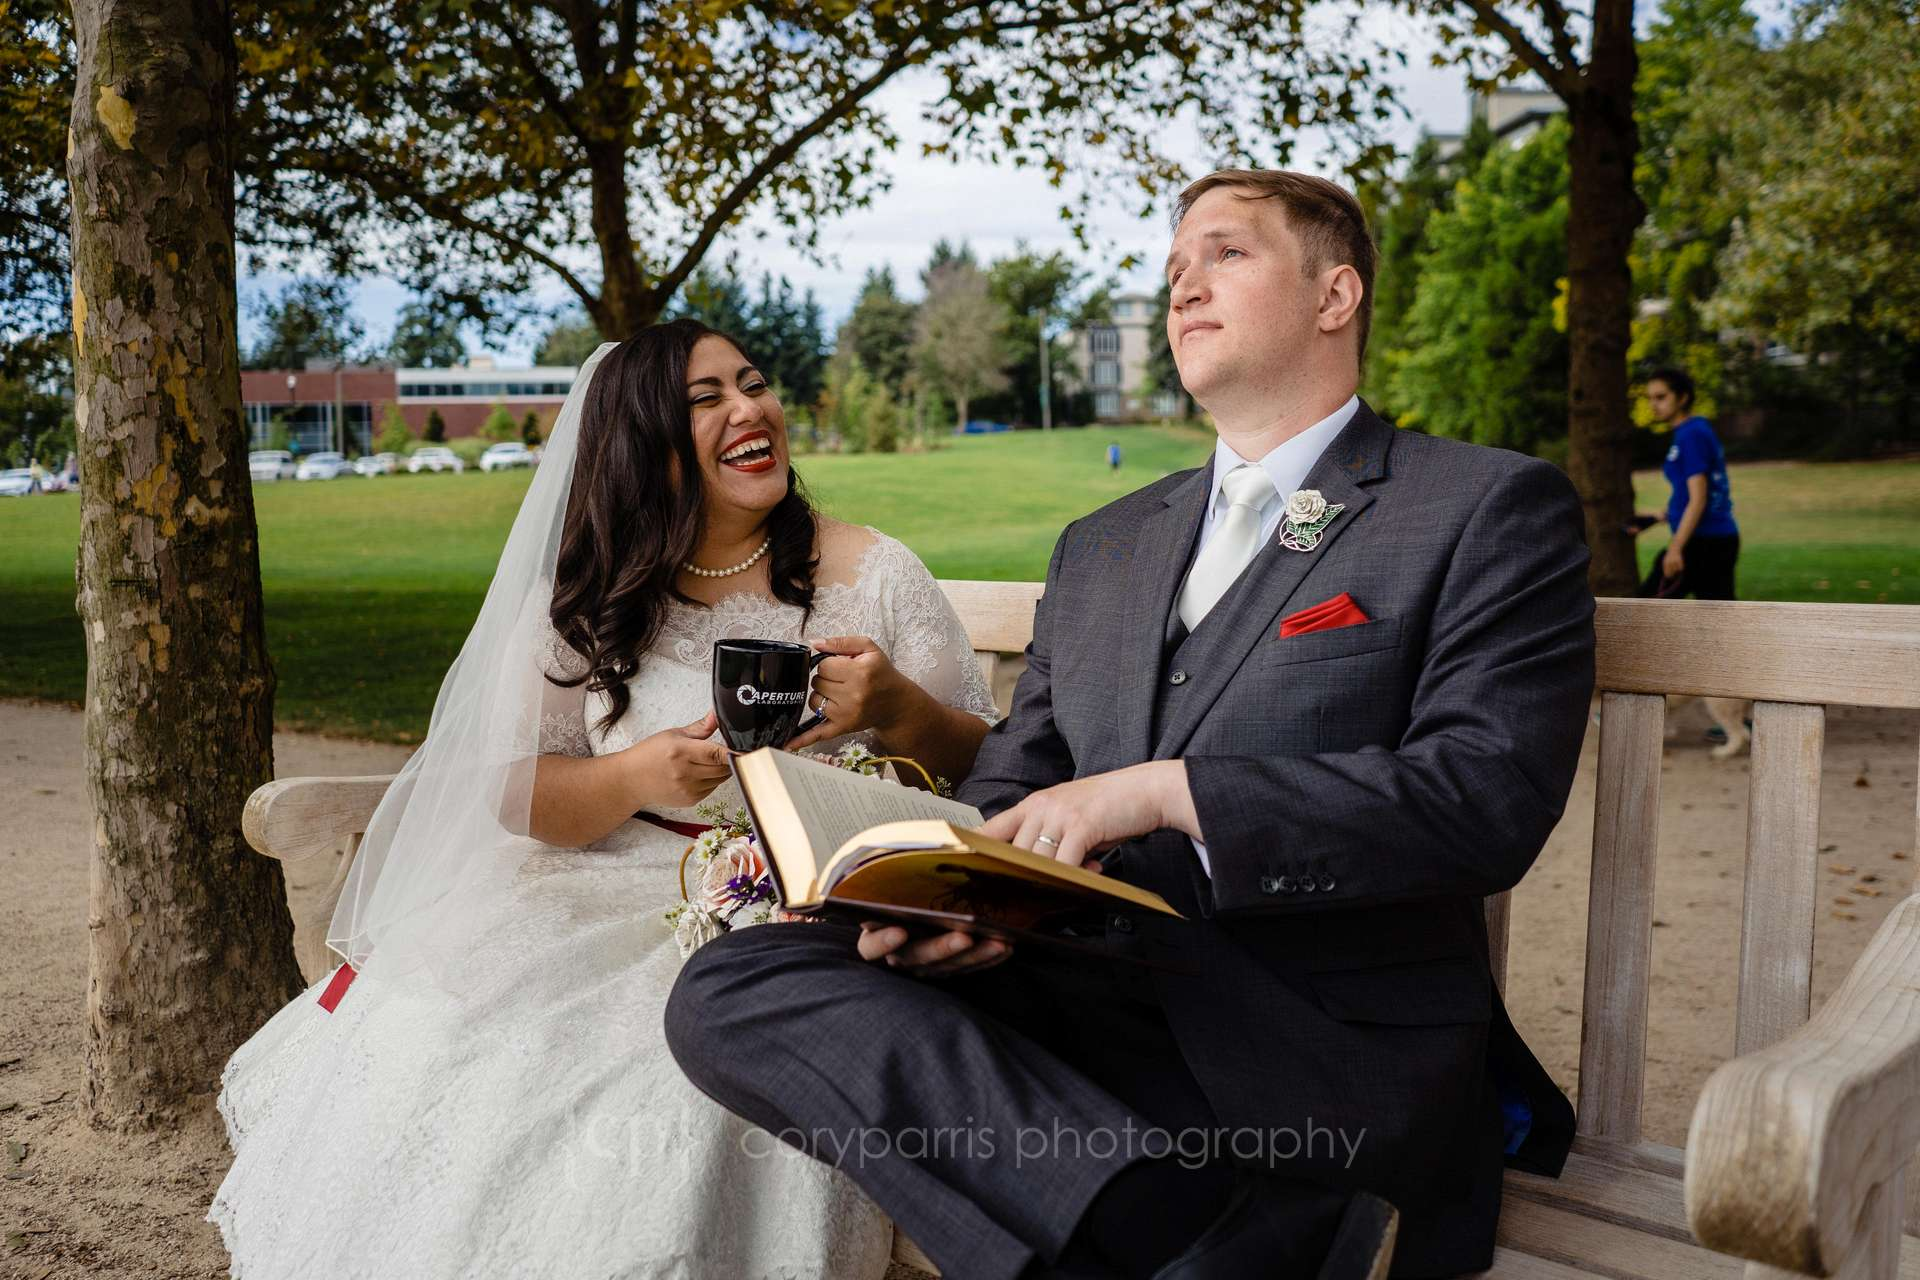 245-bellevue-wedding-photographer.jpg